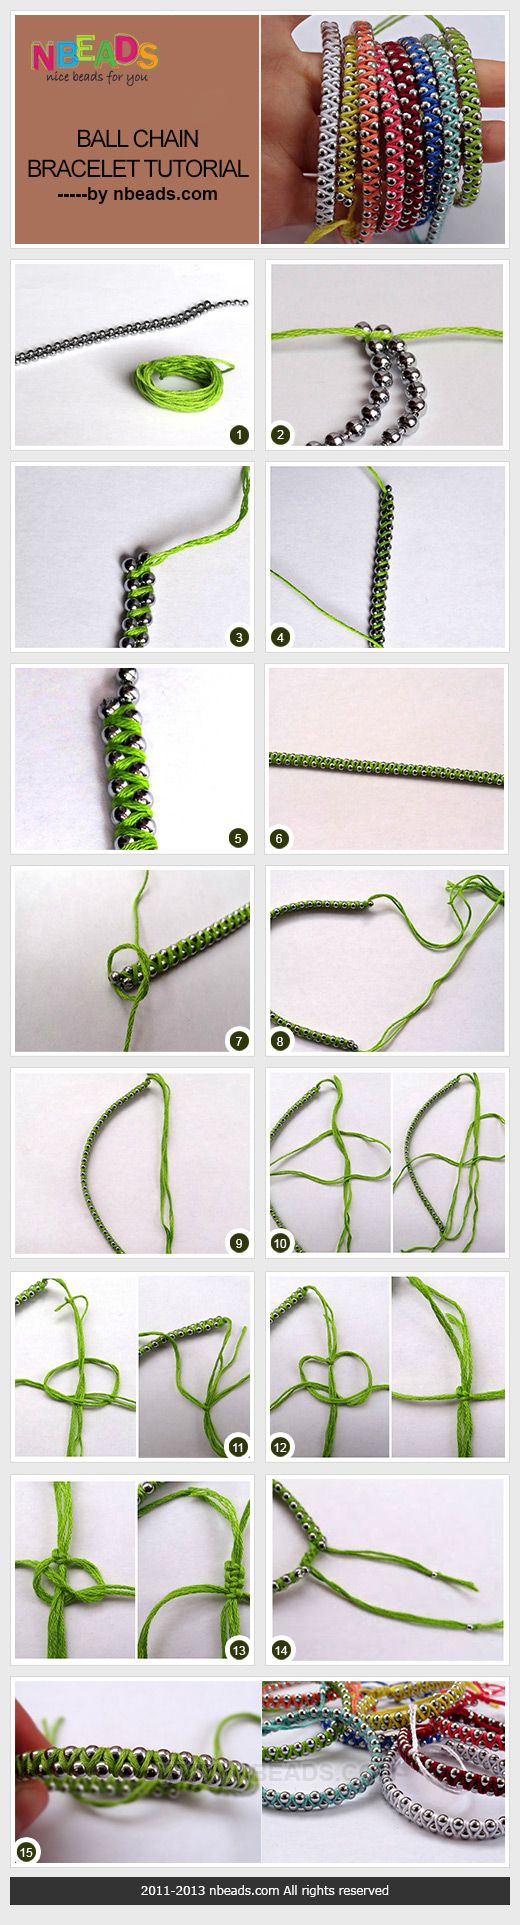 how to make twisted cord with embroidery floss